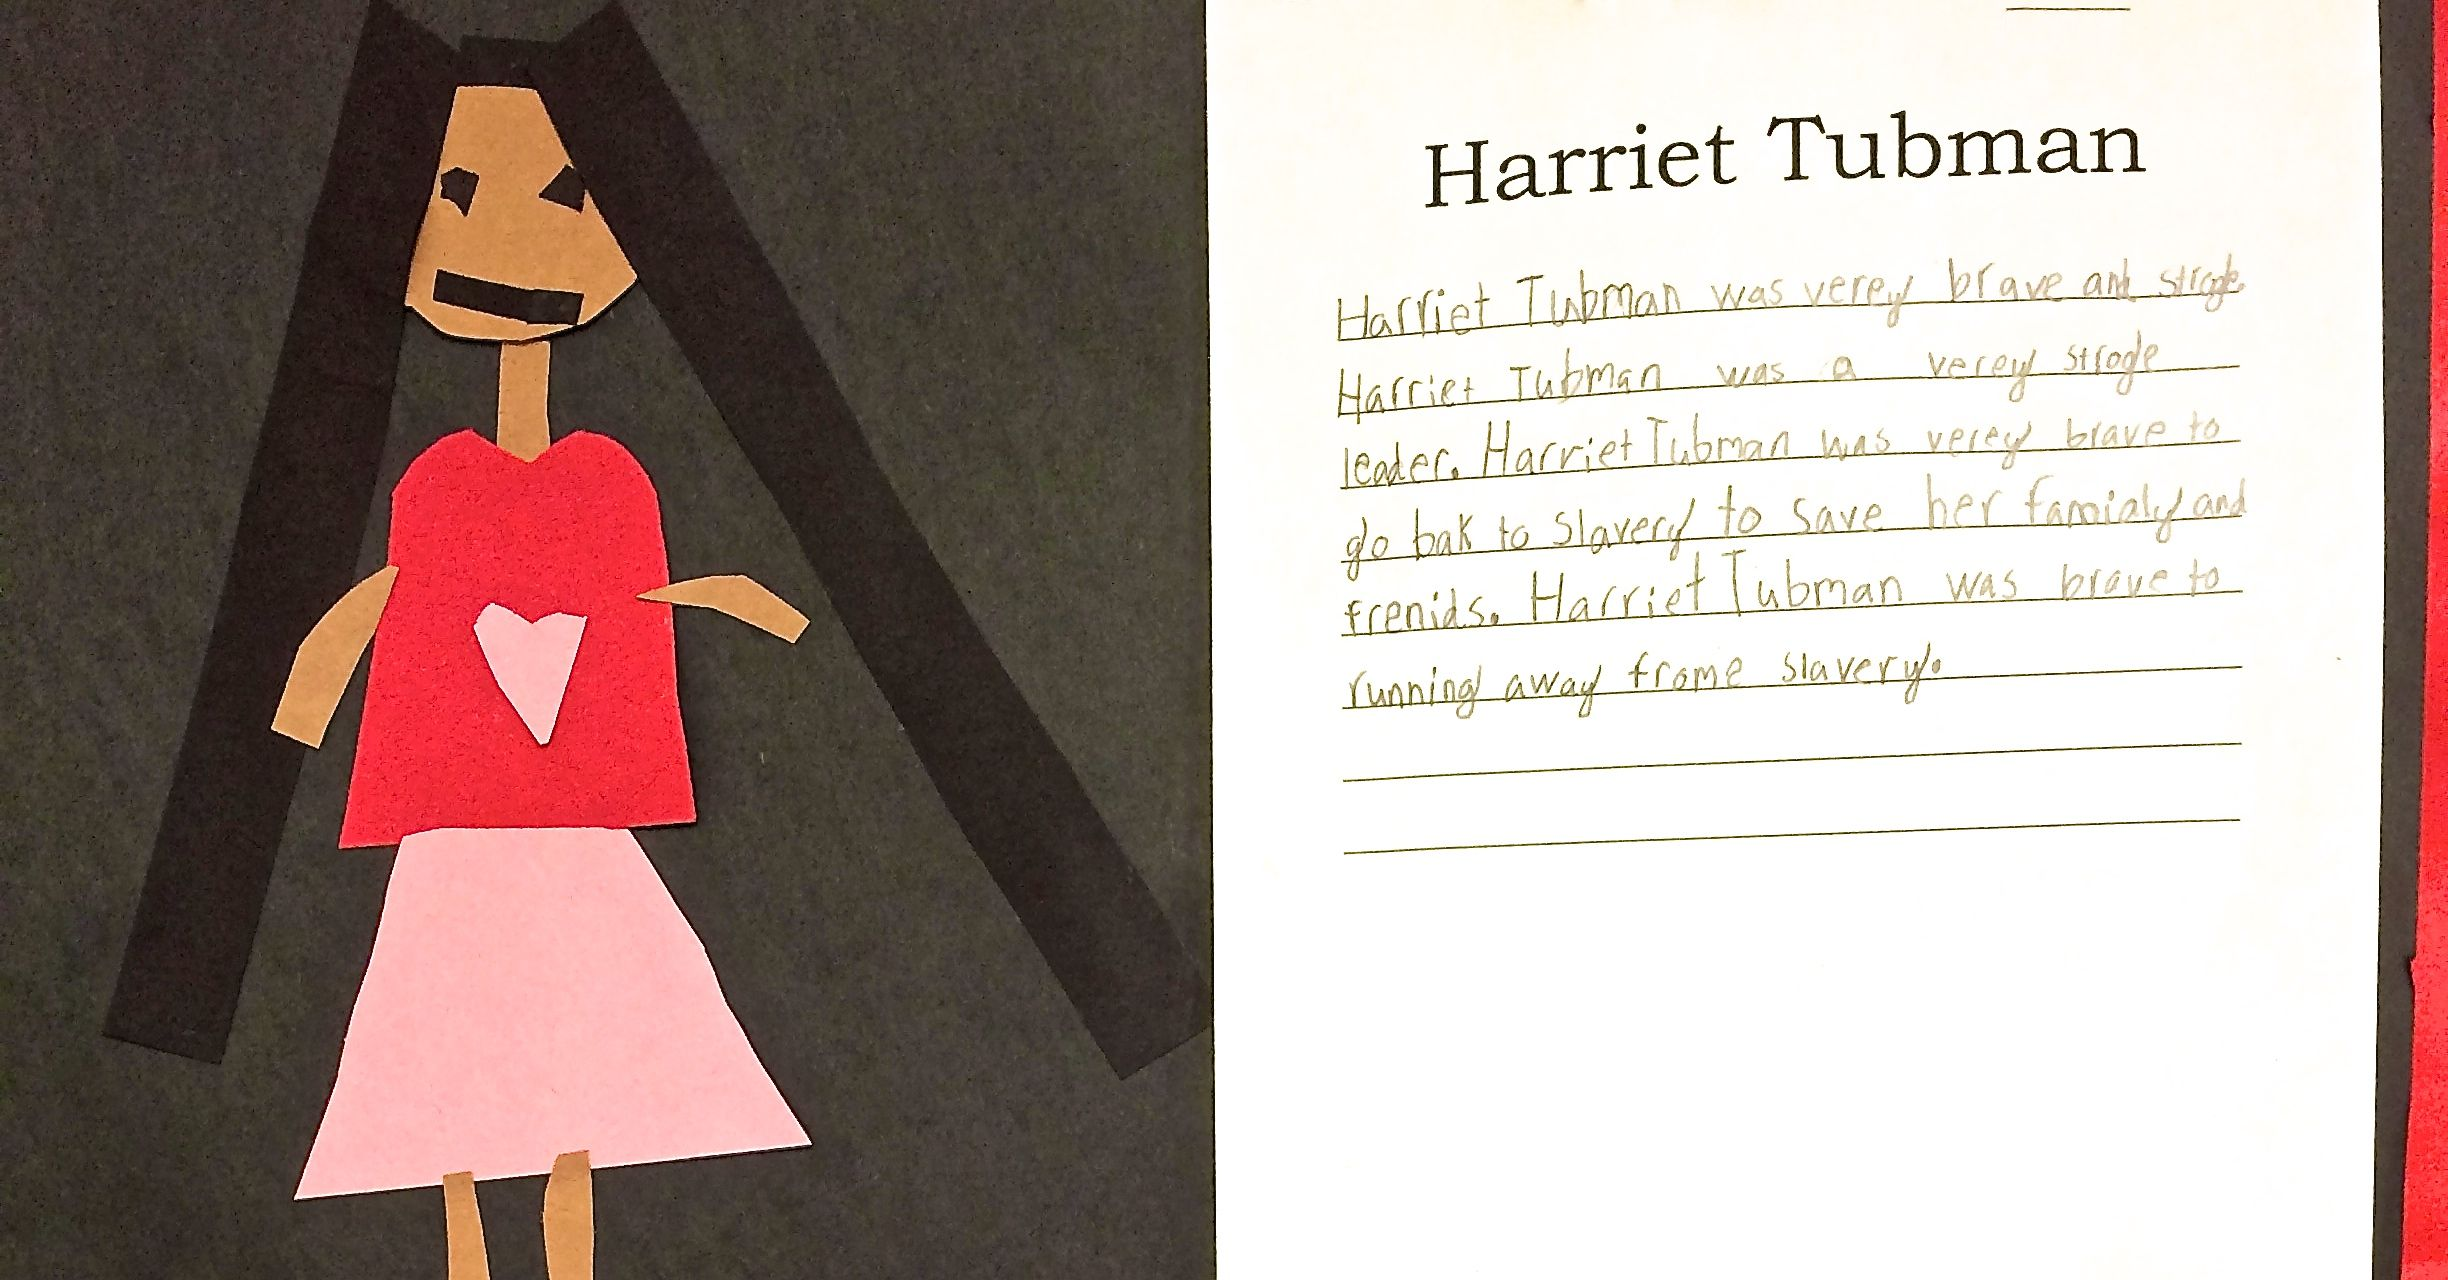 Learning About Harriet Tubman Teacher Tested Ideas